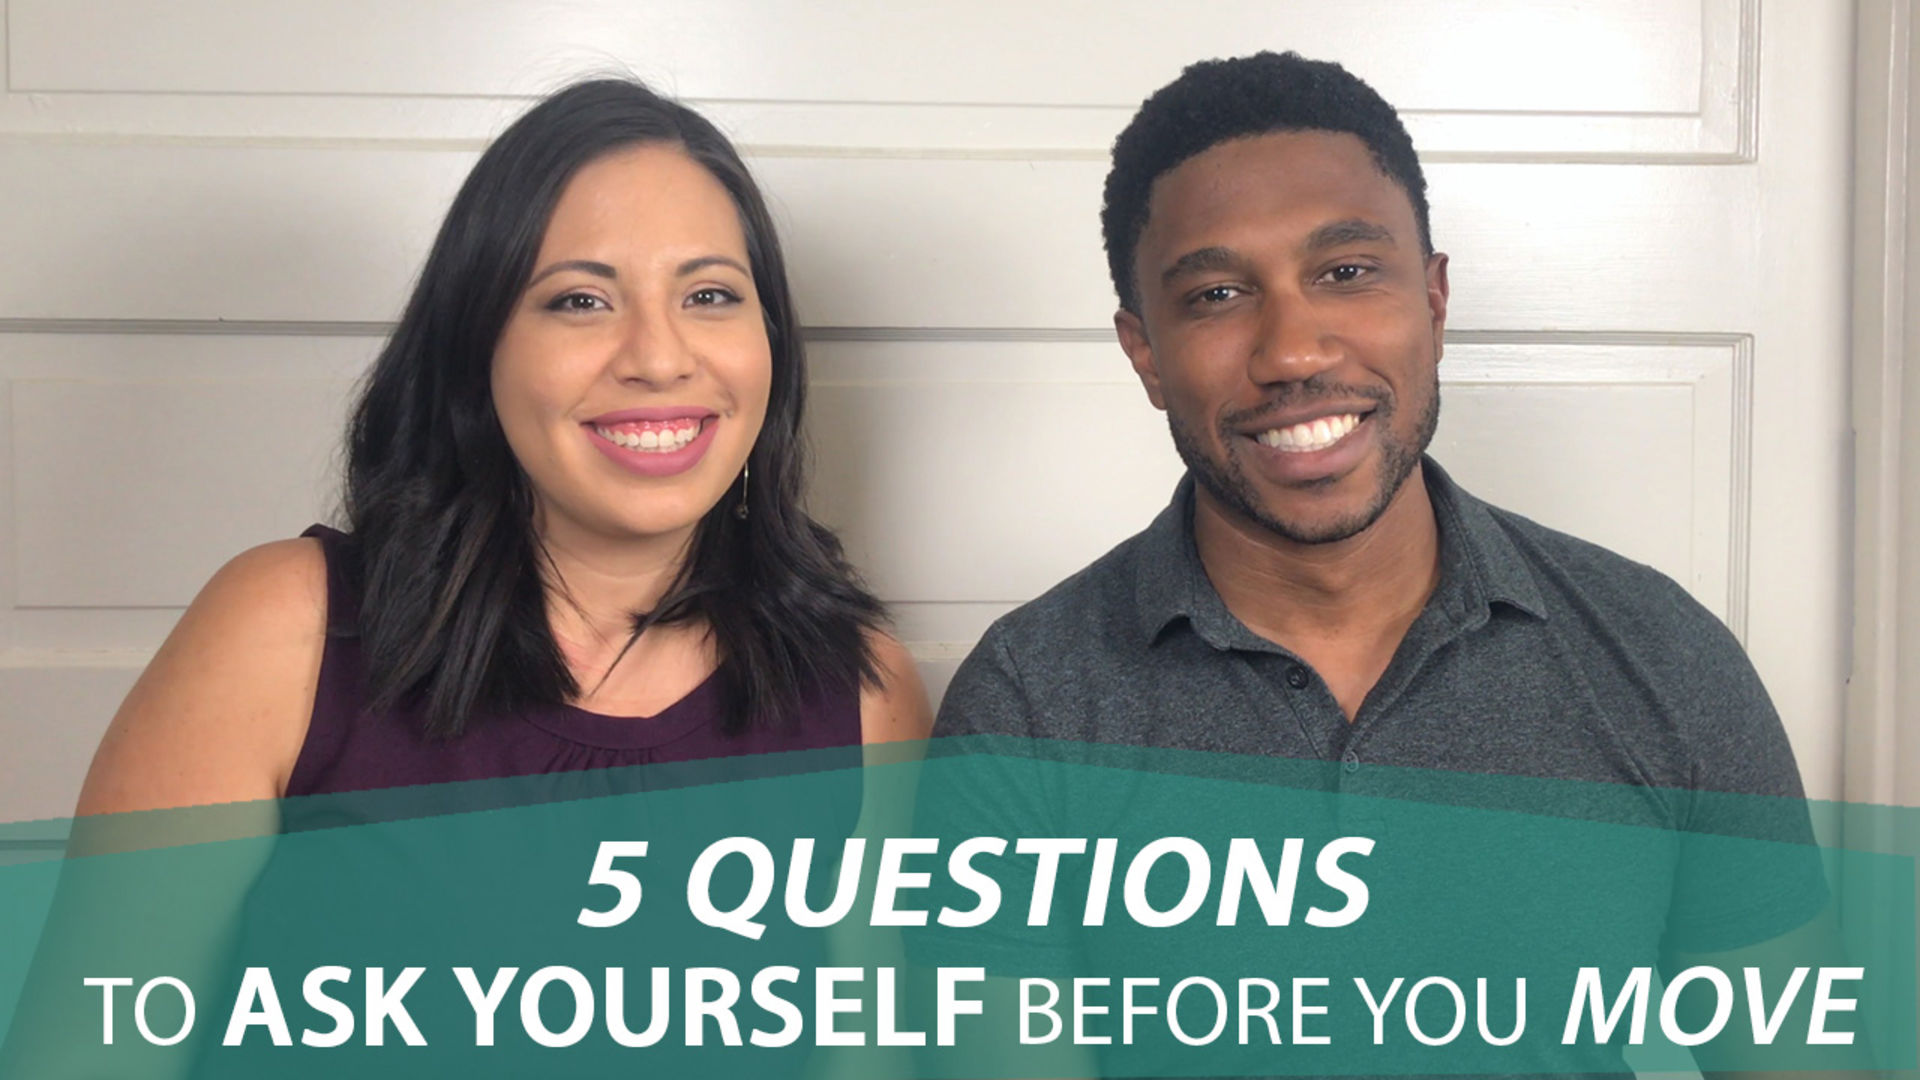 Start Building a Plan for Your Move With These 5 Questions